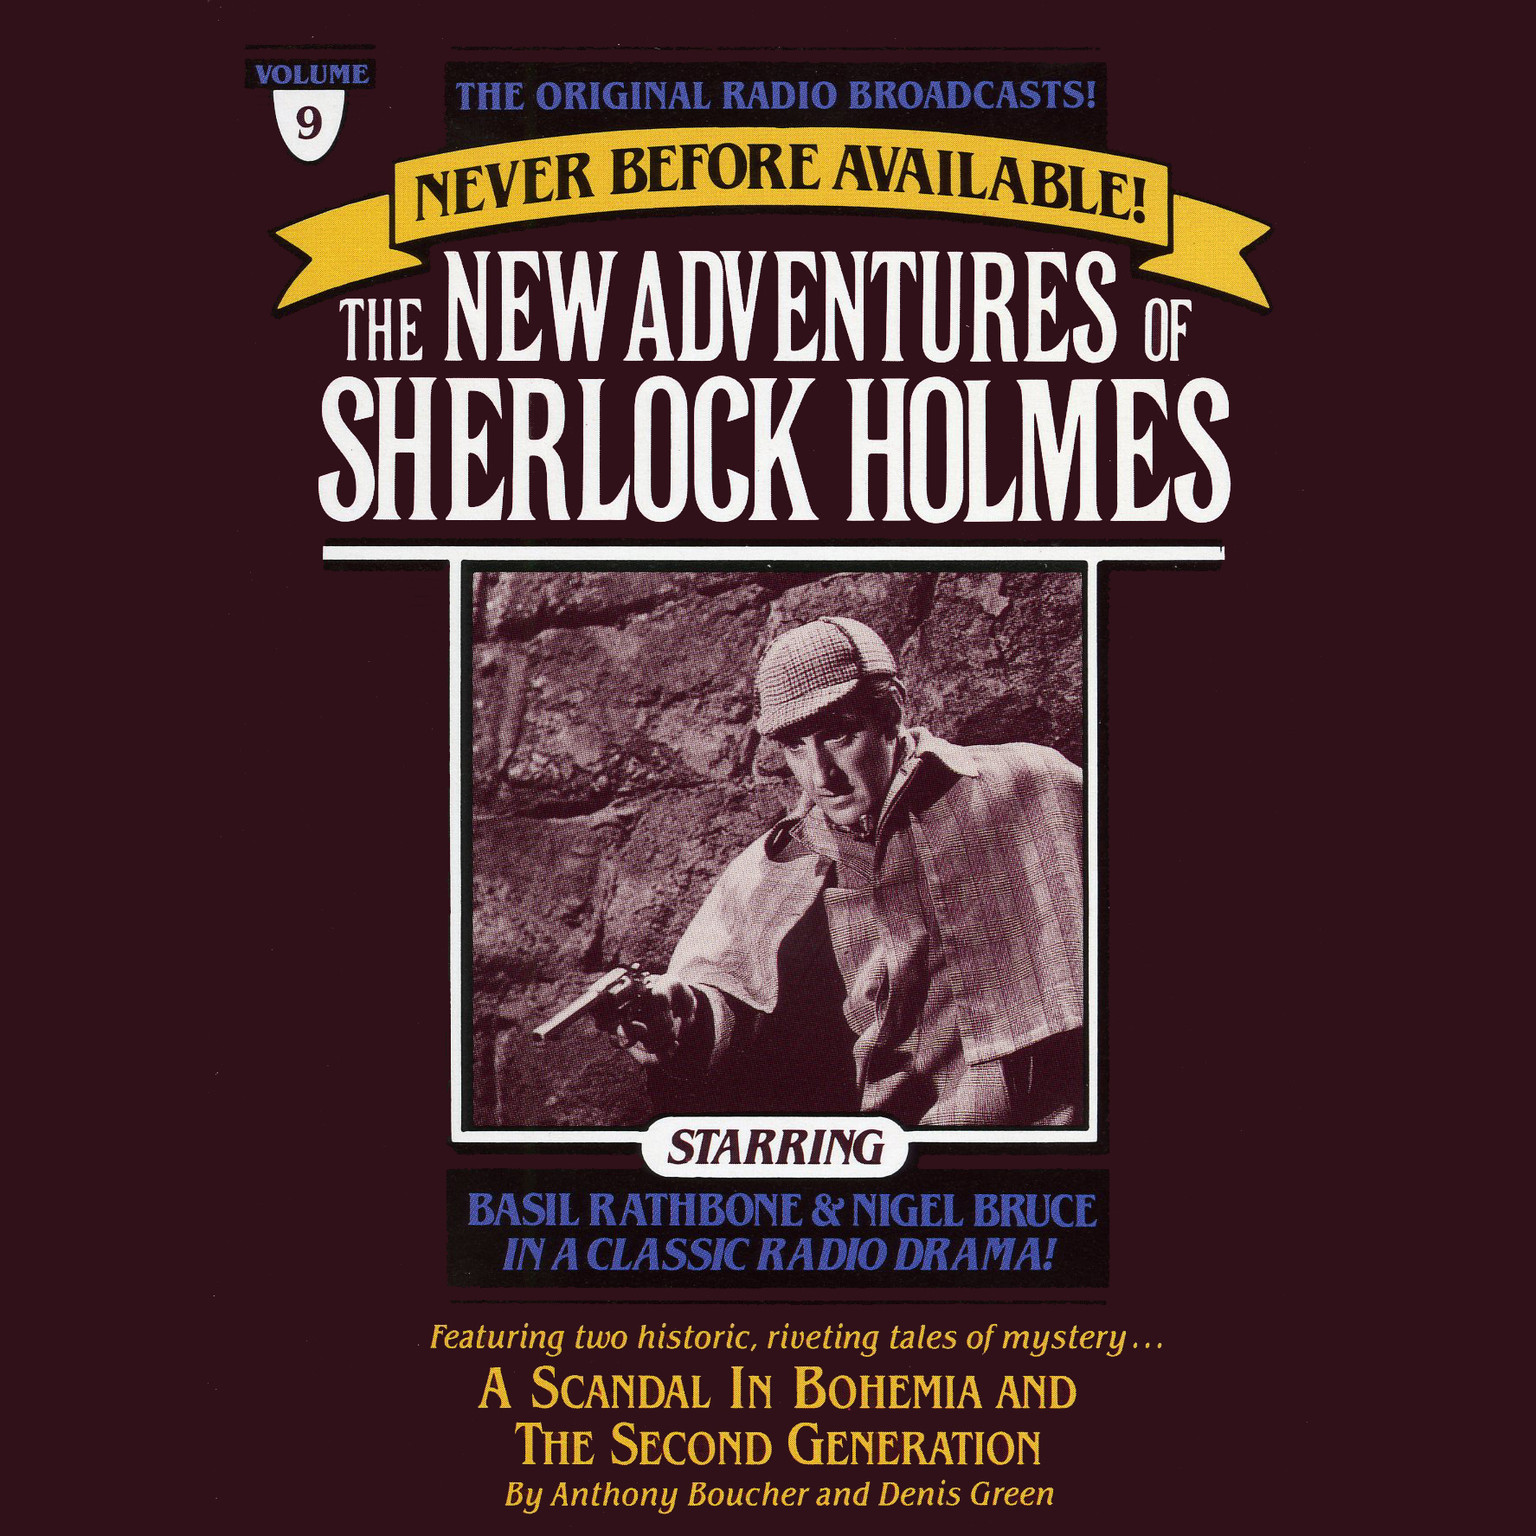 Printable A Scandal in Bohemia and The Second Generation: The New Adventures of Sherlock Holmes, Episode 9 Audiobook Cover Art